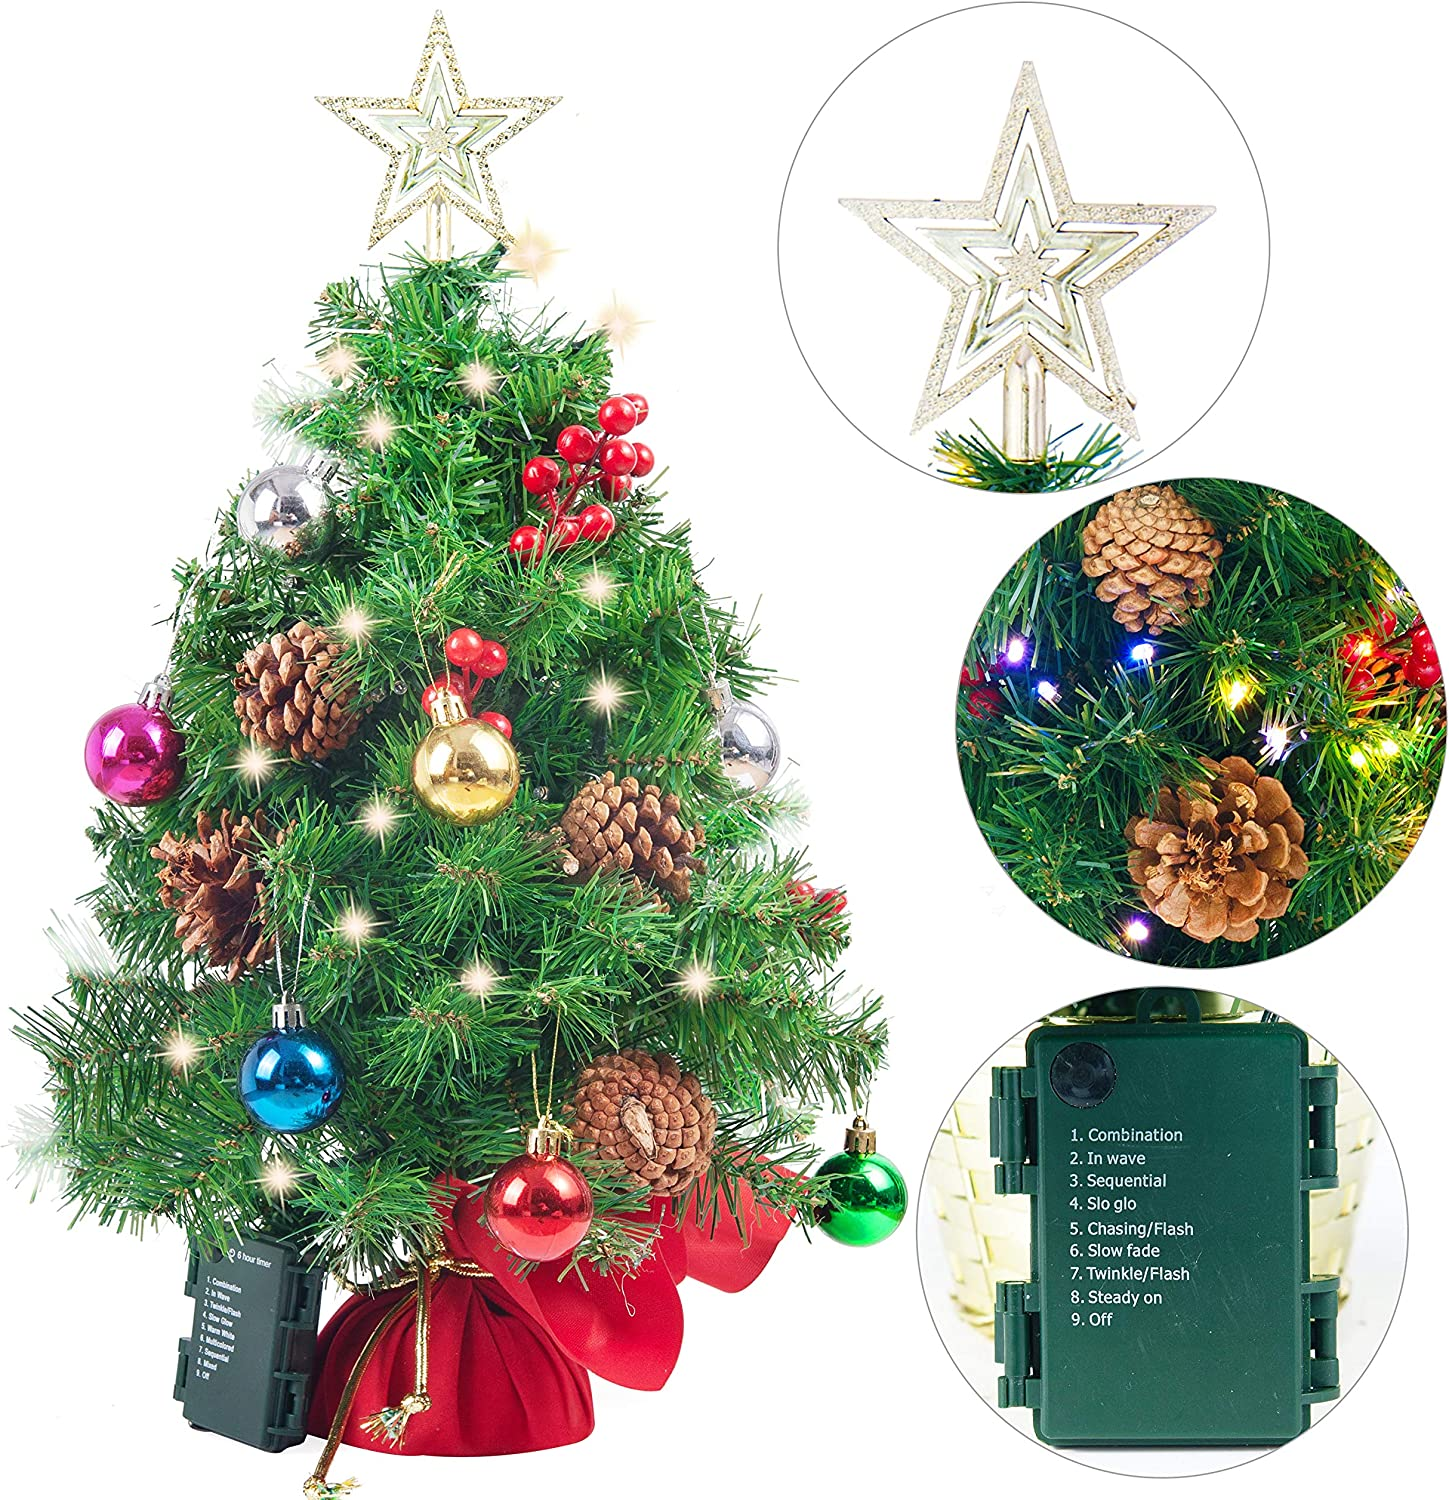 "Joiedomi 23"" Prelit Tabletop Christmas Tree with Multicolored Lights, Holly Berries, Pine Cones, Star Tree Topper & Ornaments for Best Holiday Season Decorations"